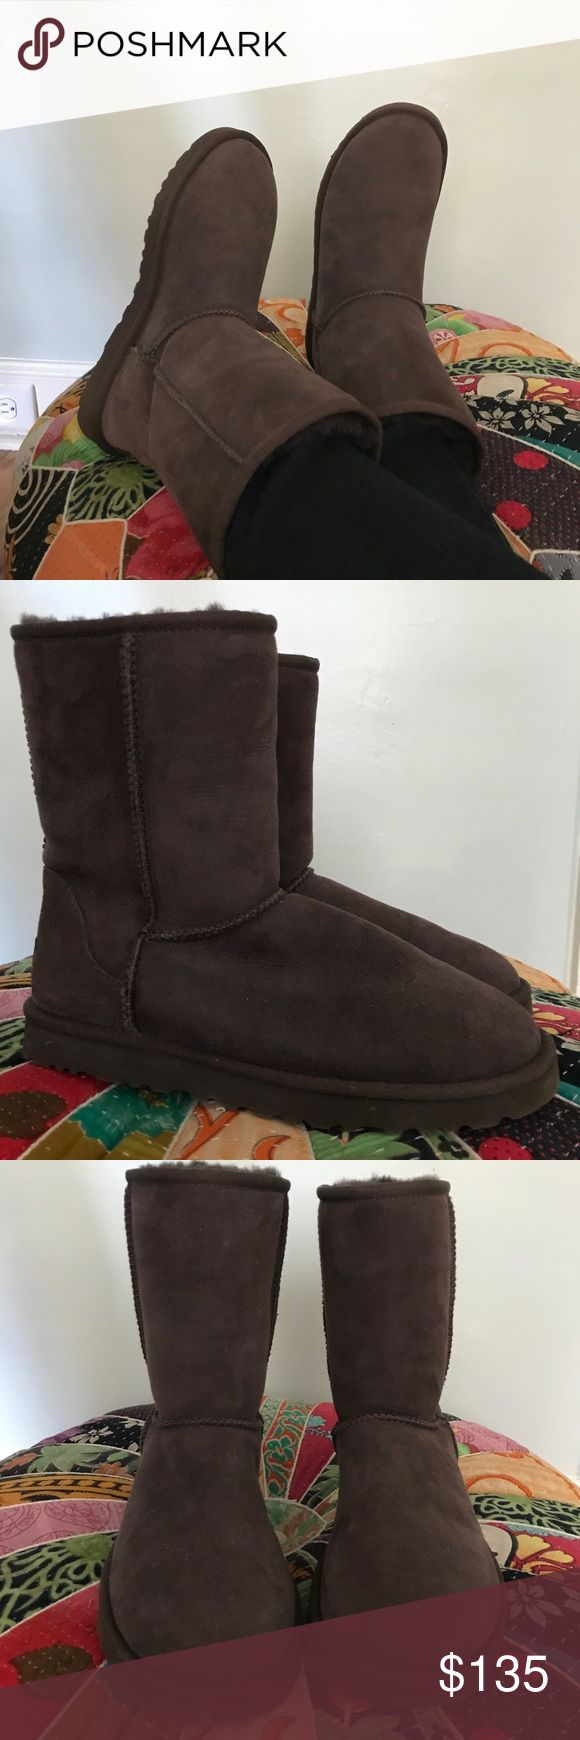 UGG Classic Short boot UGG Classic Short boot in chocolate. So comfortable, soft, and warm! Seldom worn and in excellent used condition. Soles pictured: what looks like a flaw on one is the sticker that was originally on the bottom. No cosmetic or structural flaws, inside or out. Retail $155.00. Authentic, see screenshot of emailed receipt. UGG Shoes